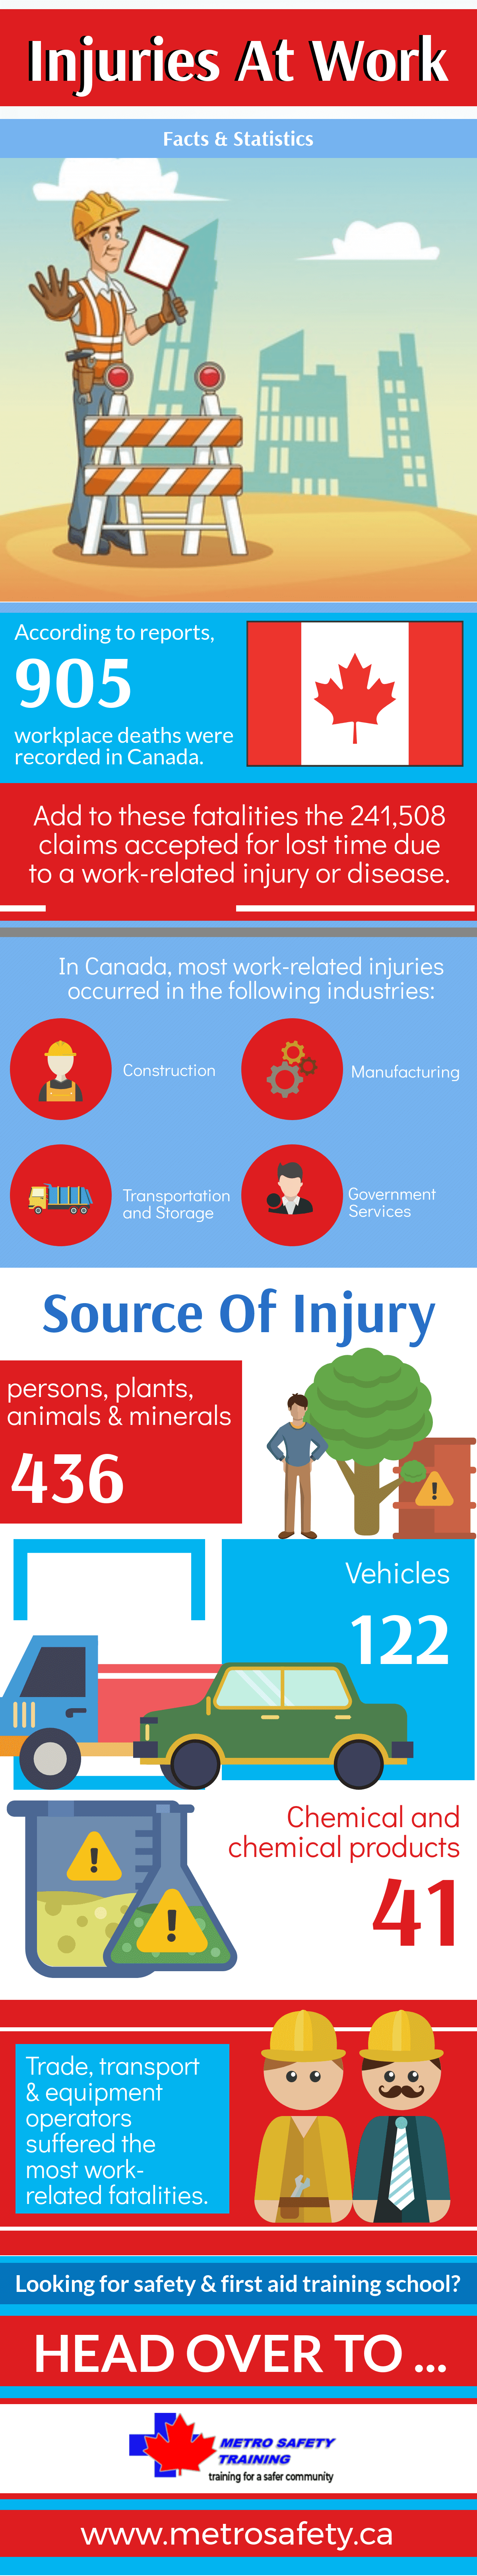 Injuries at Work- Facts & Statistics